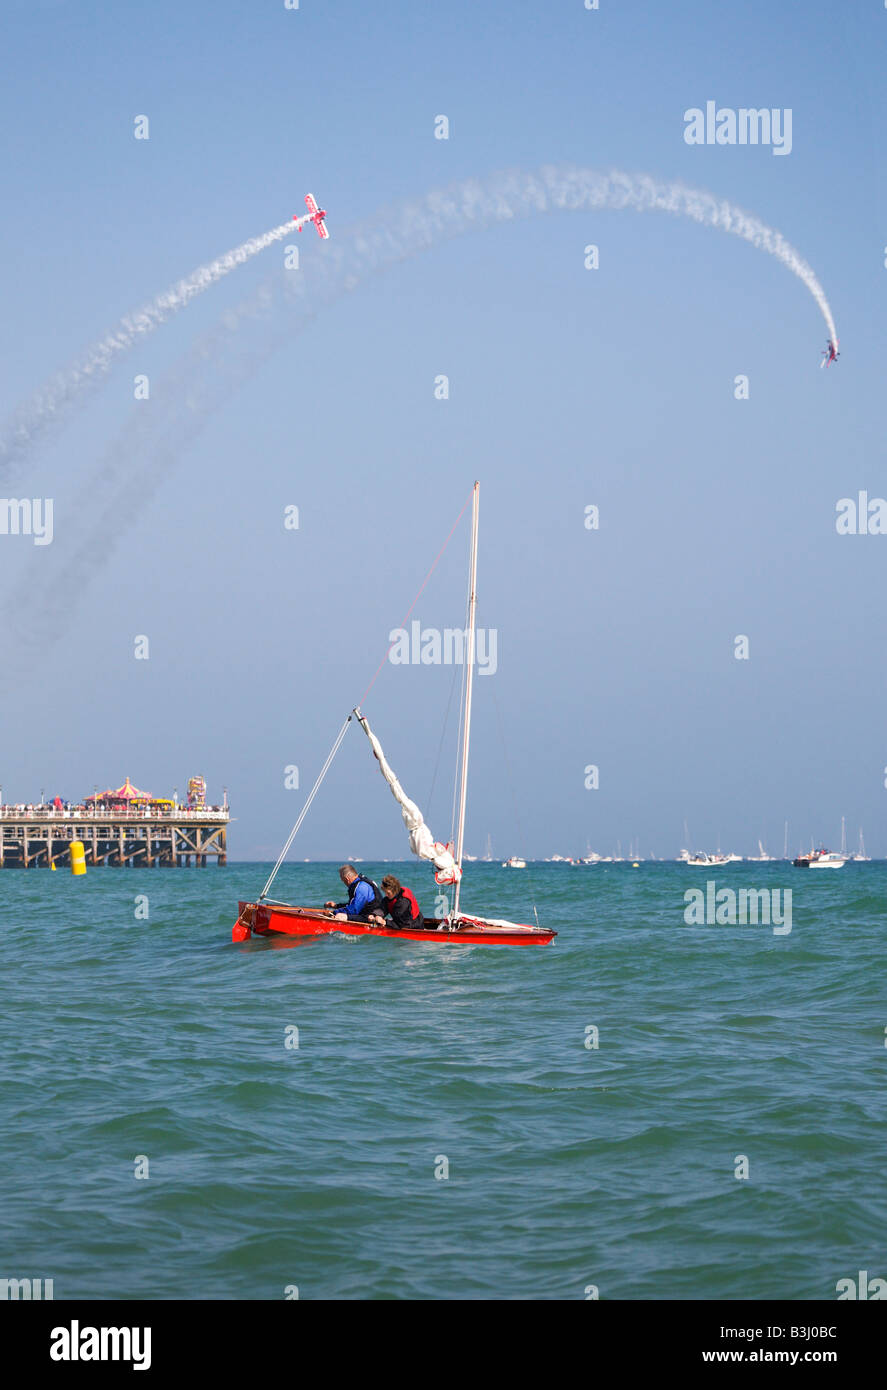 A couple in a sailing boat off Bournemouth beach, during the Bournemouth Air Festival. Bi-plane display over the Stock Photo